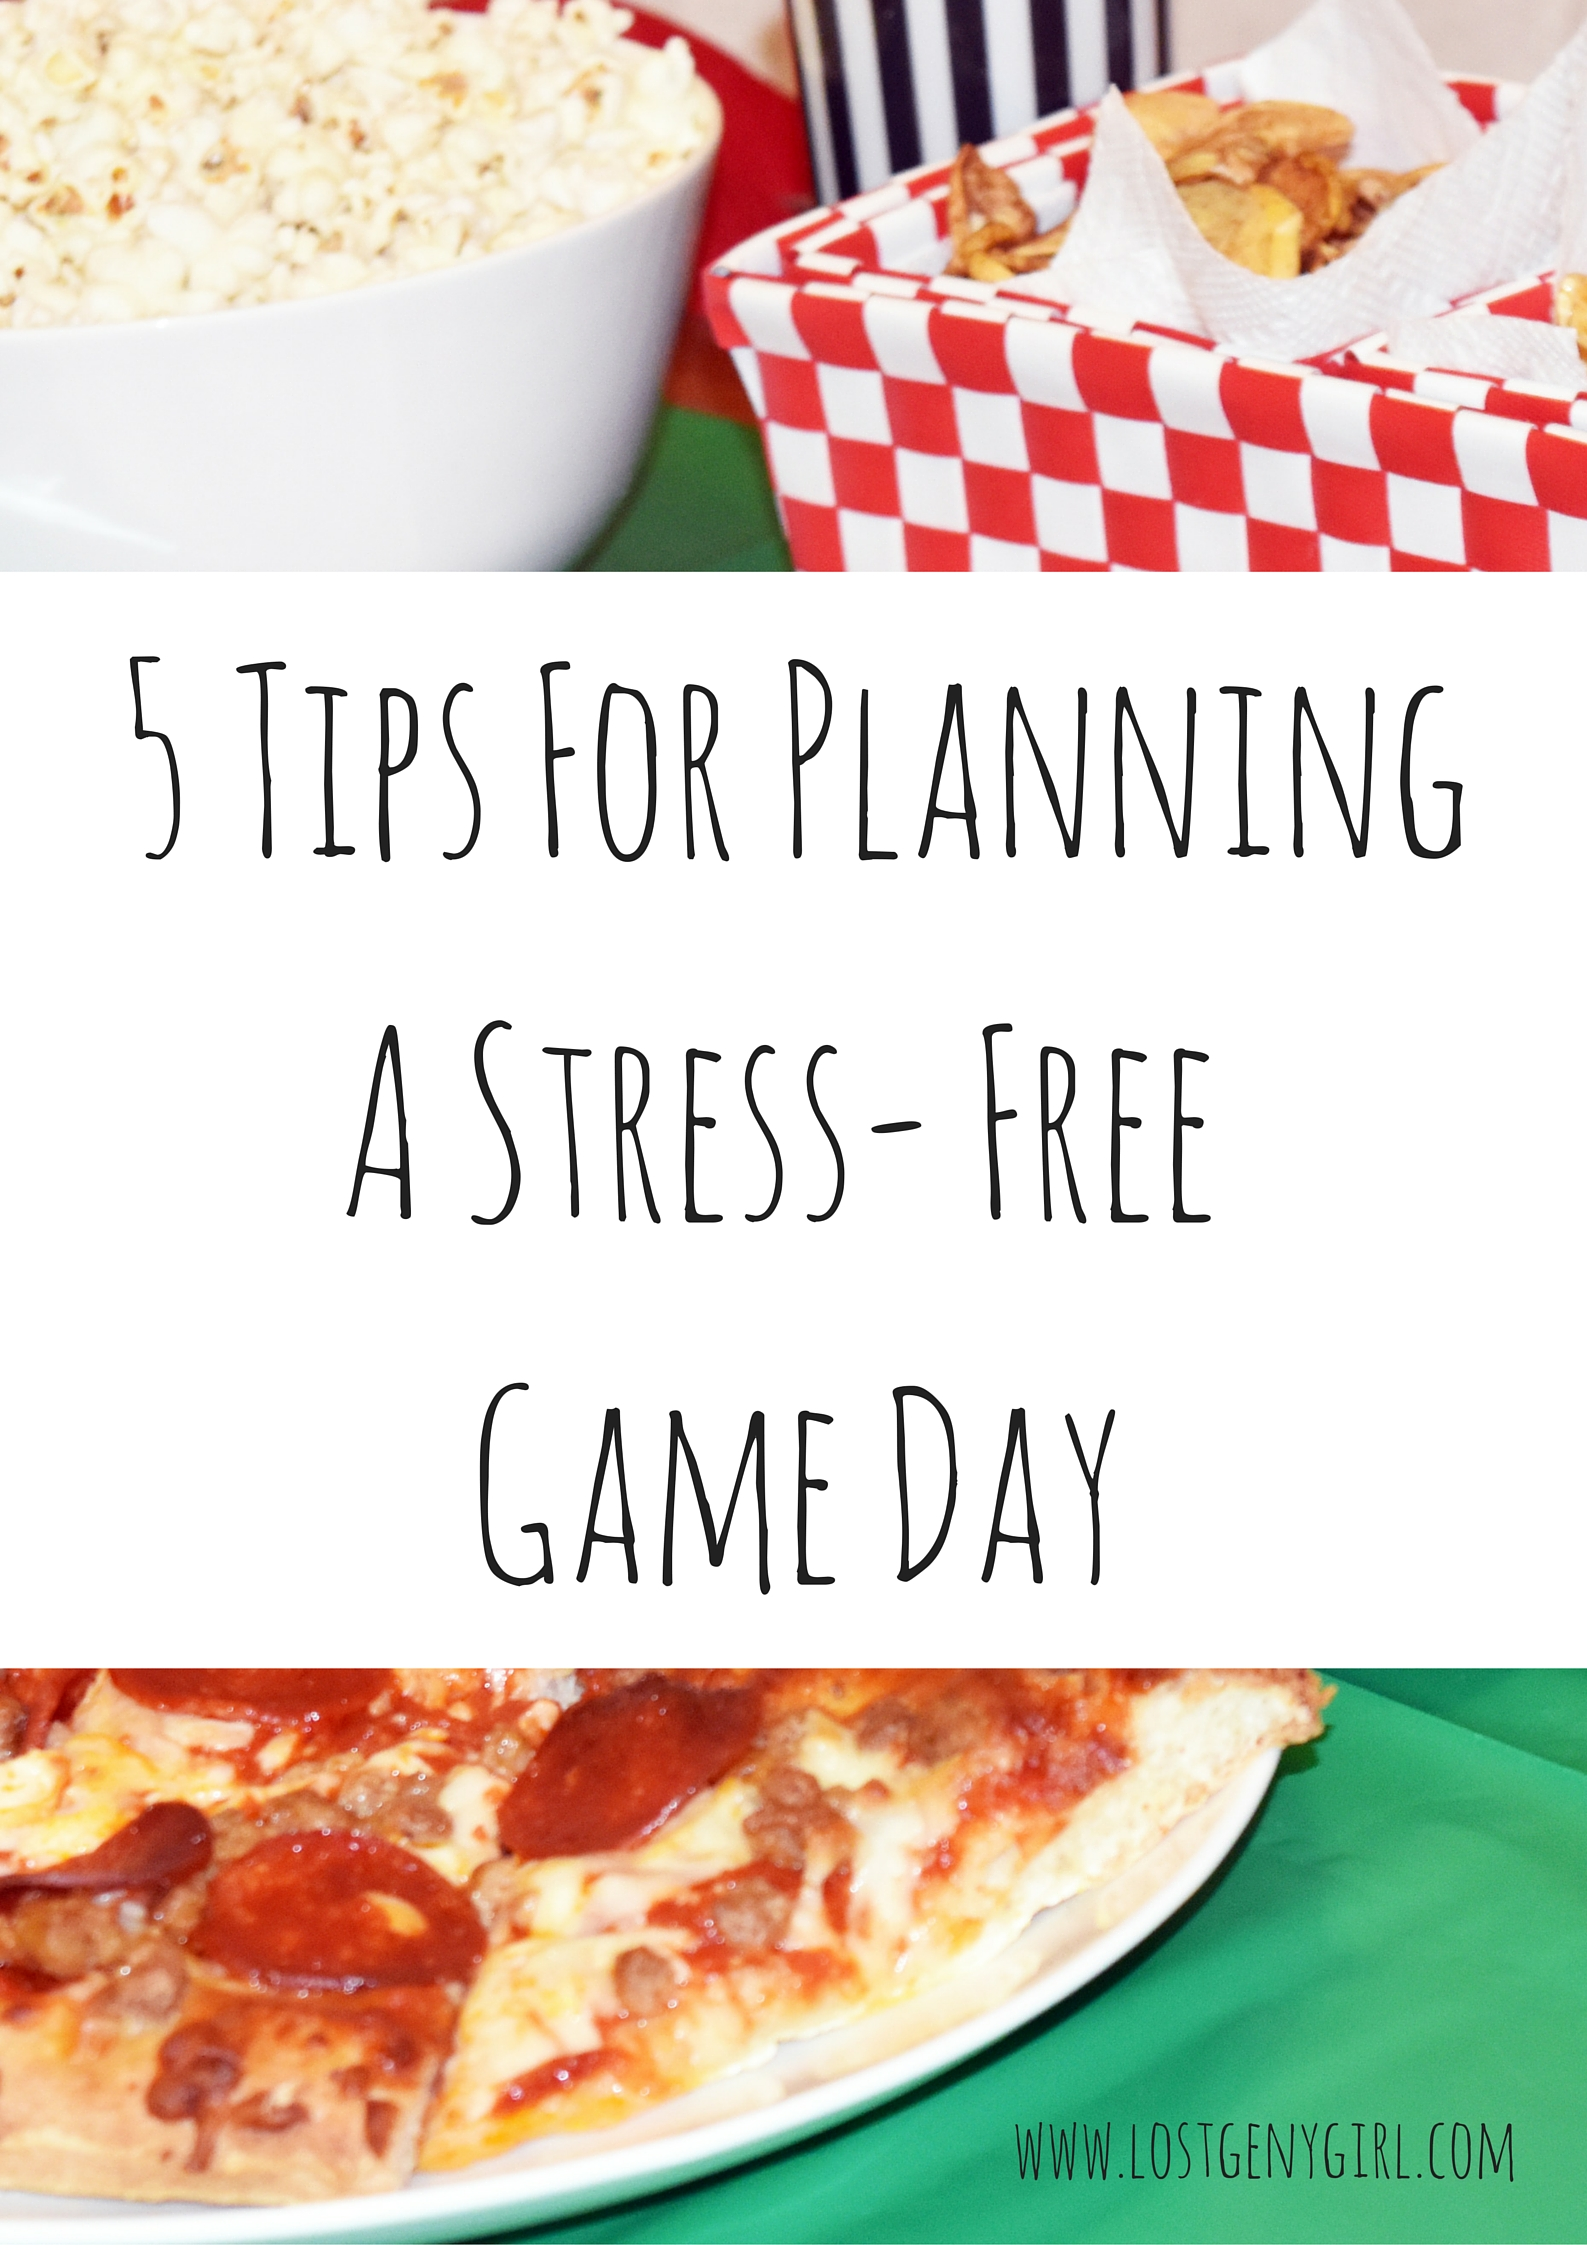 5 Tips For PlanningA Stress- FreeGame Day